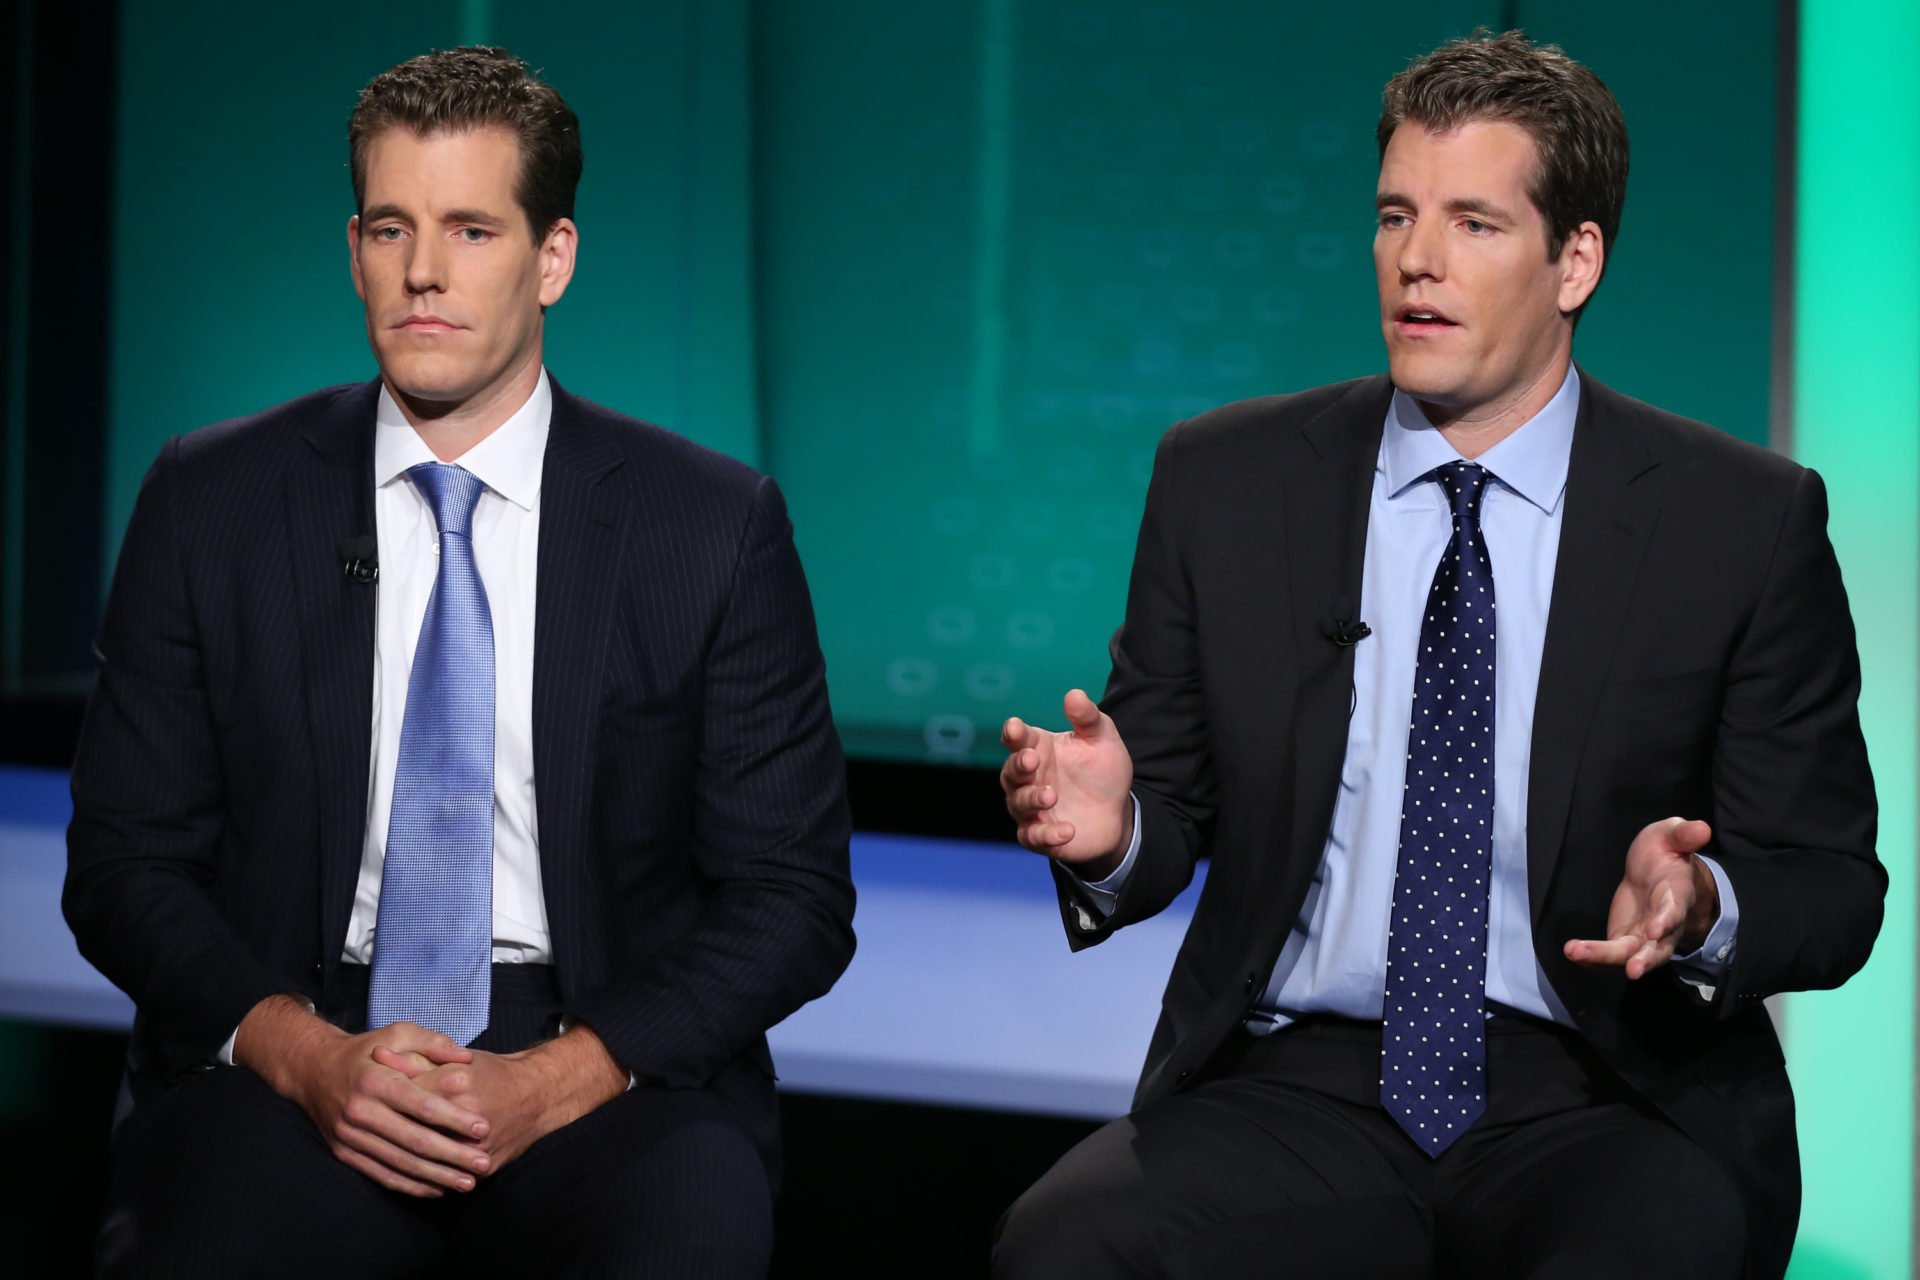 Bullish on the Bitcoin Price - The Winklevoss Brothers 13